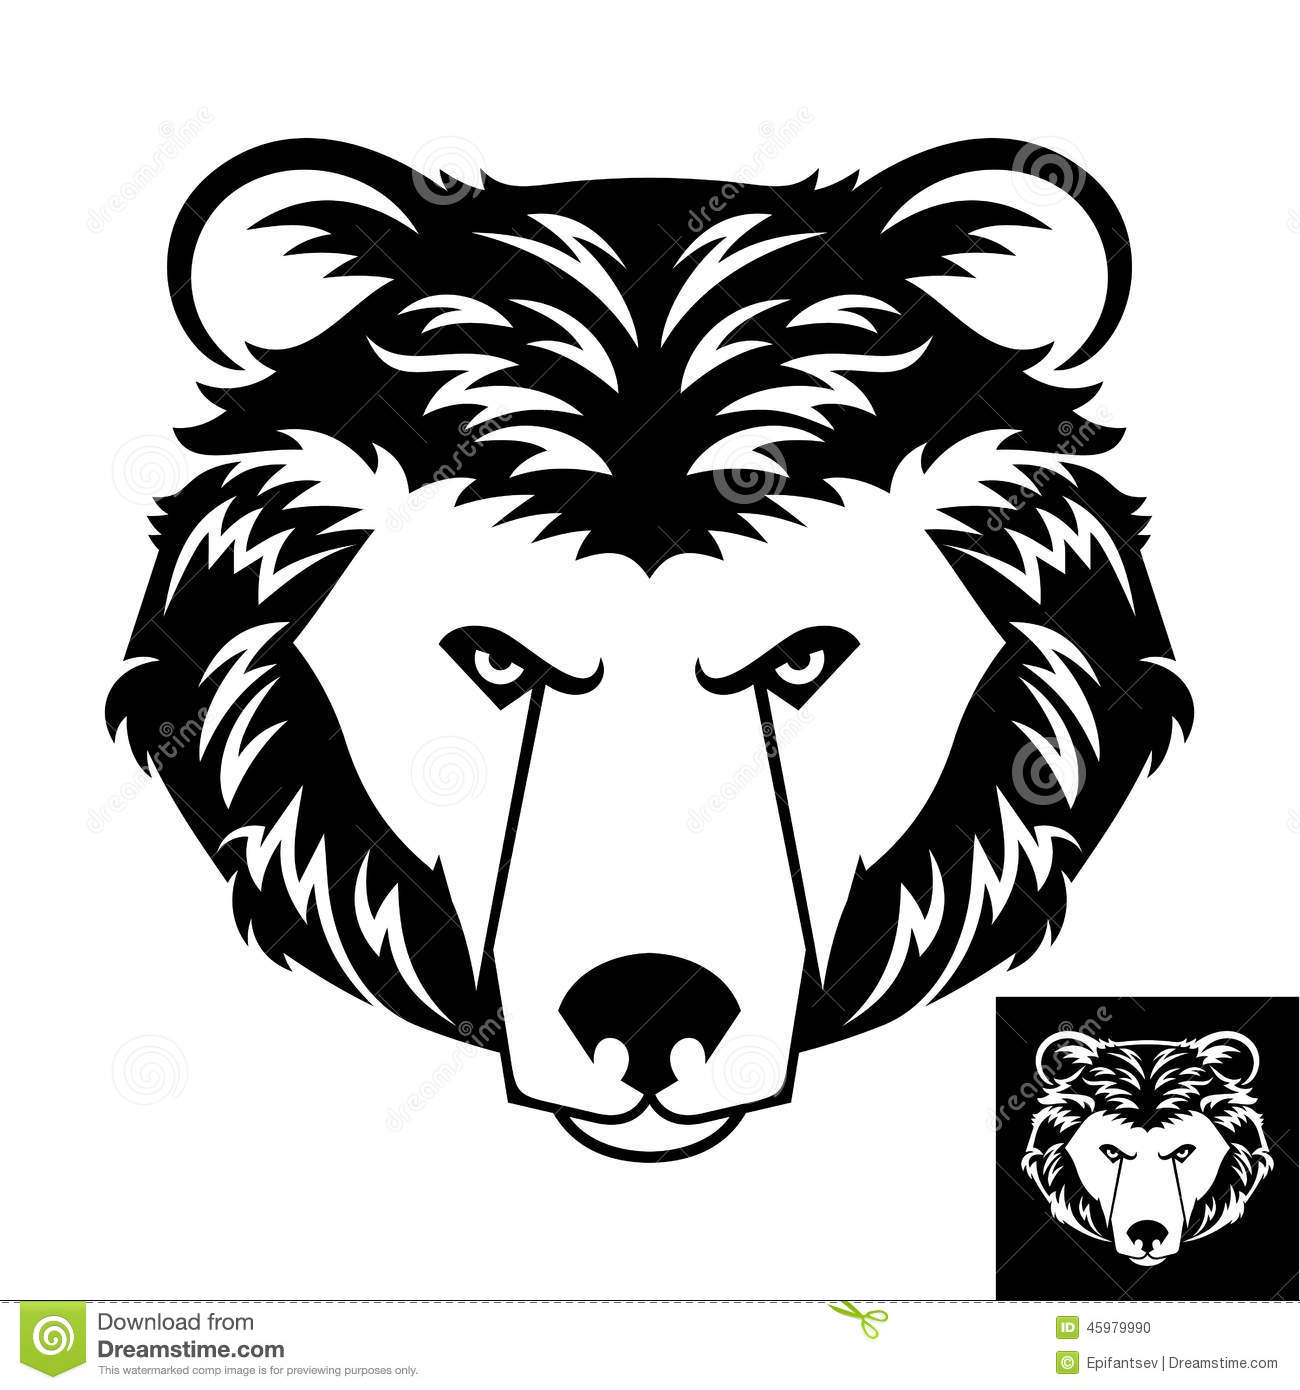 Bear head logo or icon in black and white. This is vector illustration ...